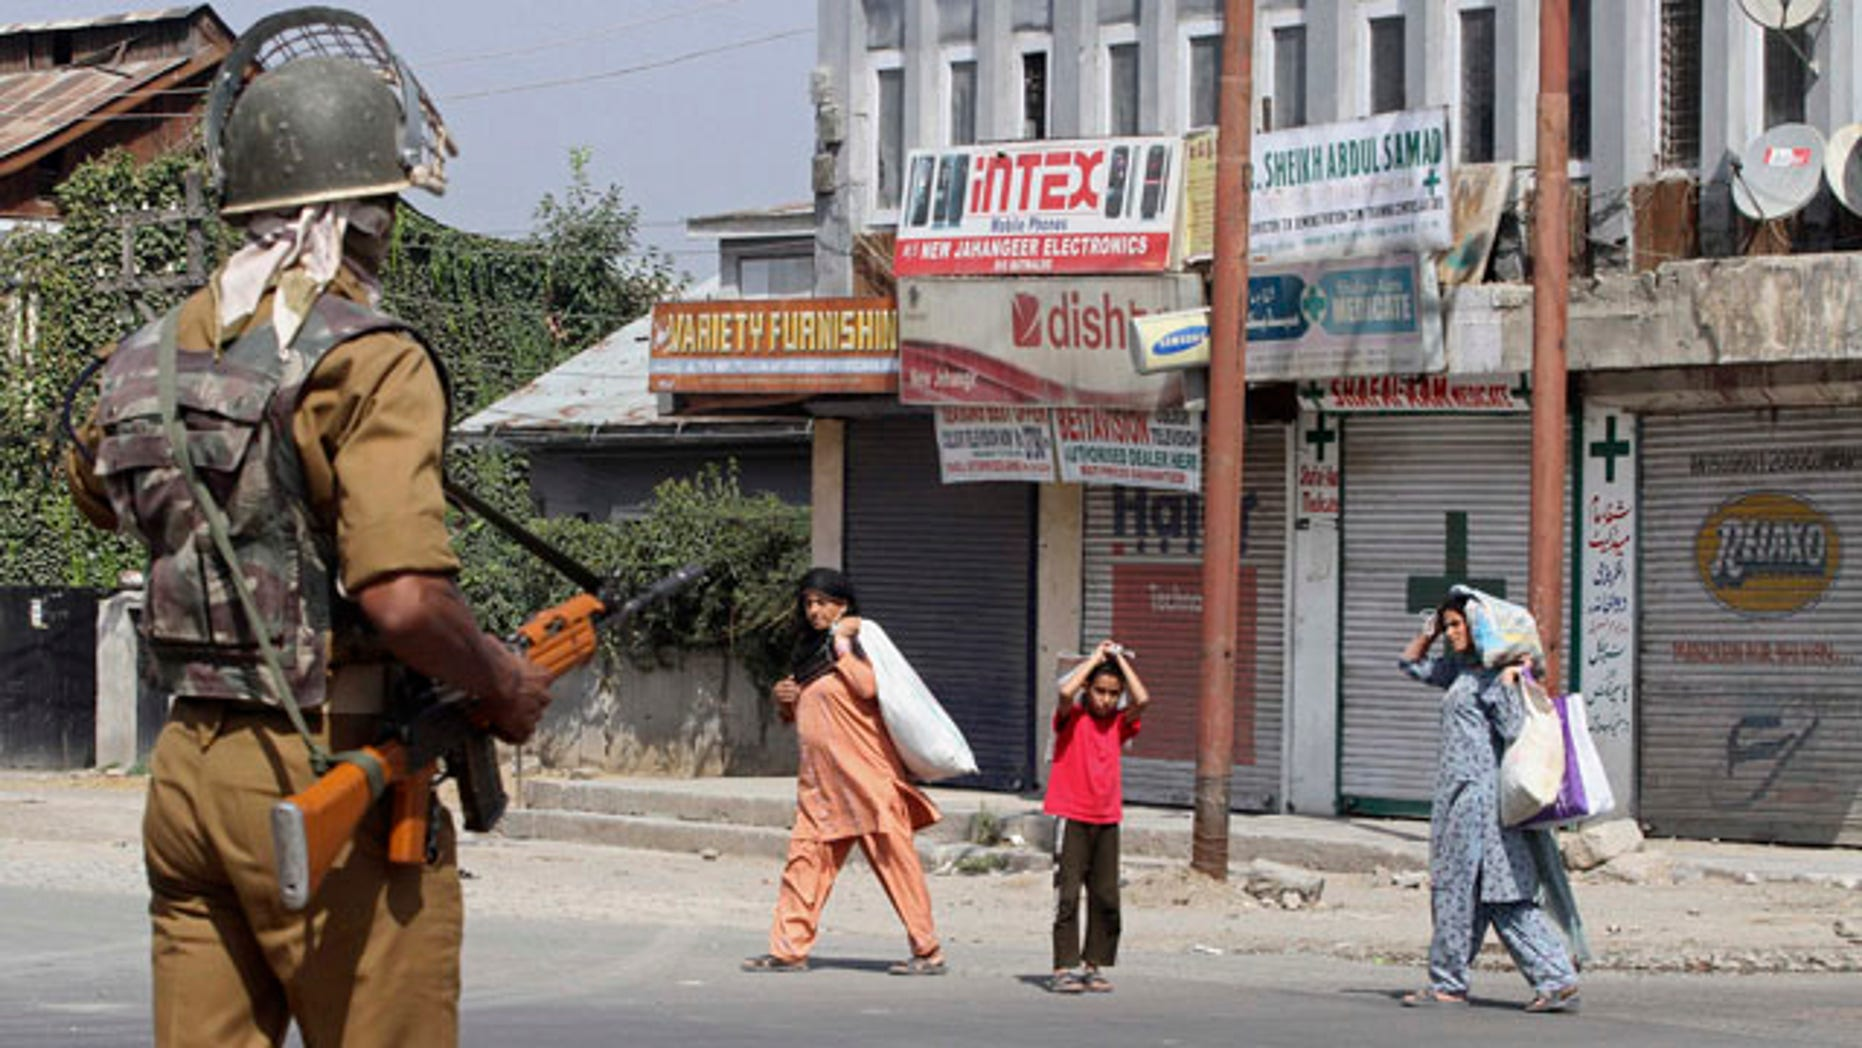 September 17: An Indian paramilitary soldier asks civilians to stay indoors during curfew in Srinagar, India.  Violent civil unrest against New Delhi's rule in Kashmir has roiled the disputed Himalayan region for the past three months and killed dozens, prompting authorities to declare curfew. (AP)